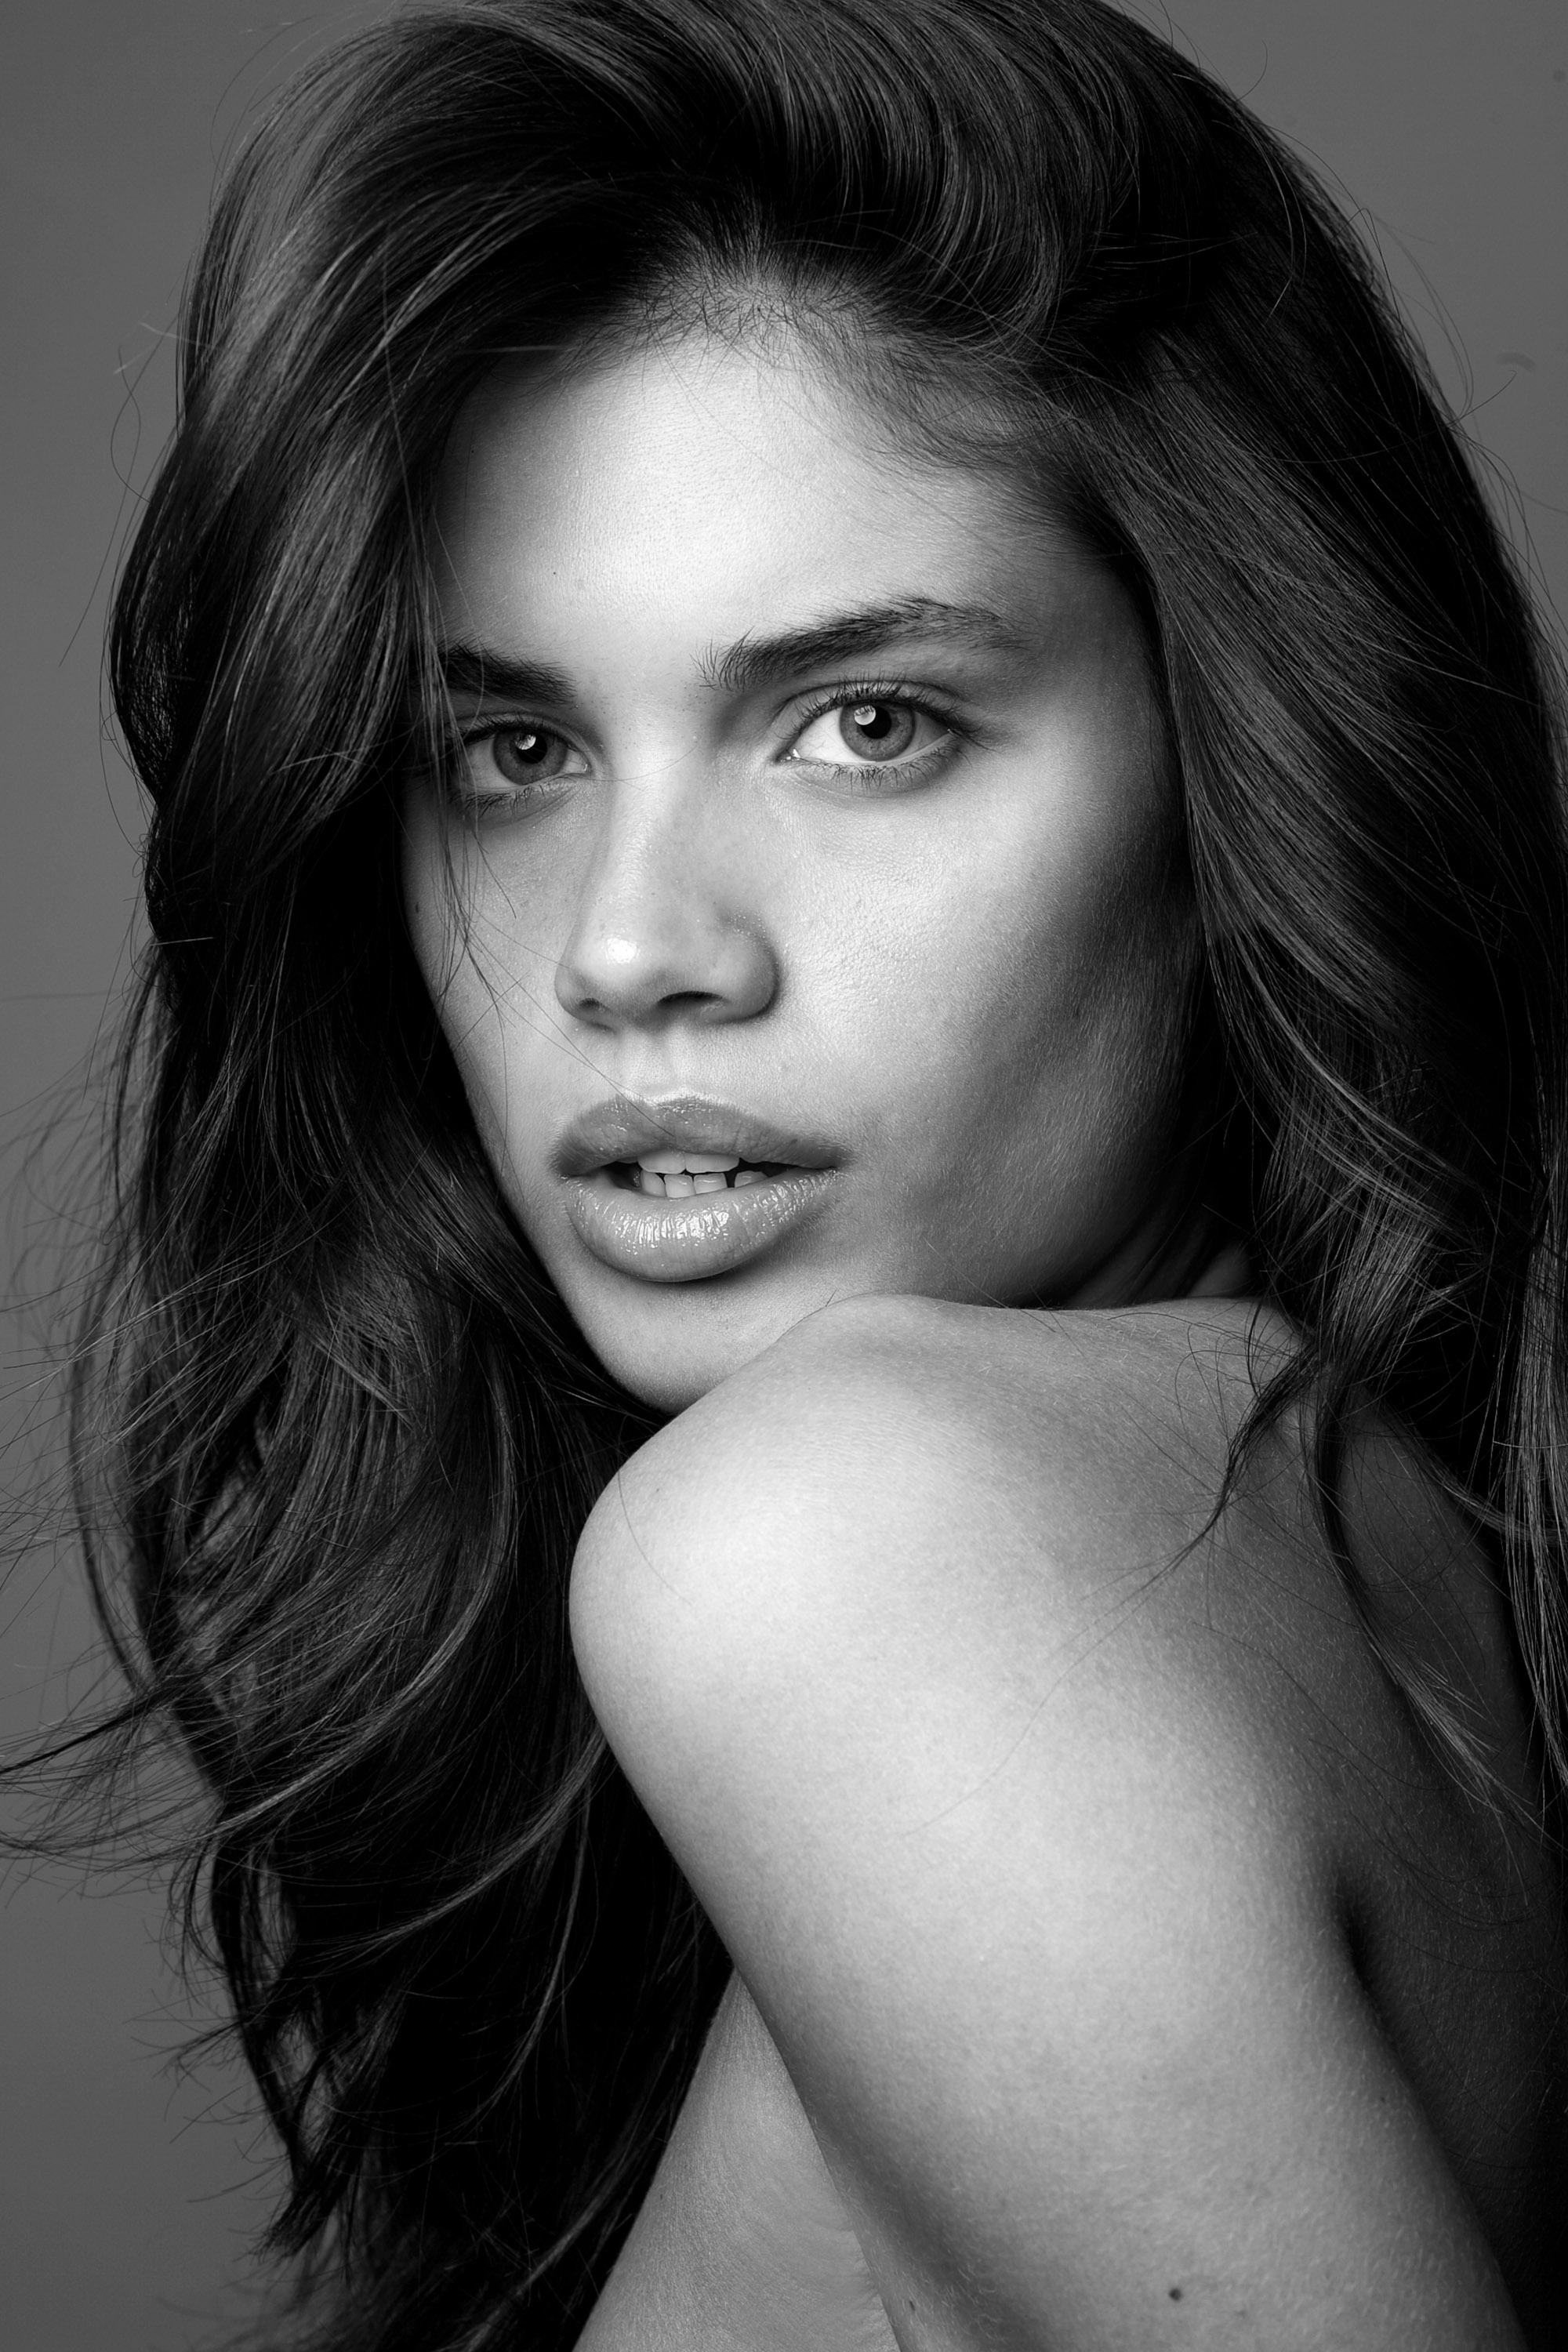 Sara Sampaio Wallpapers Images Photos Pictures Backgrounds